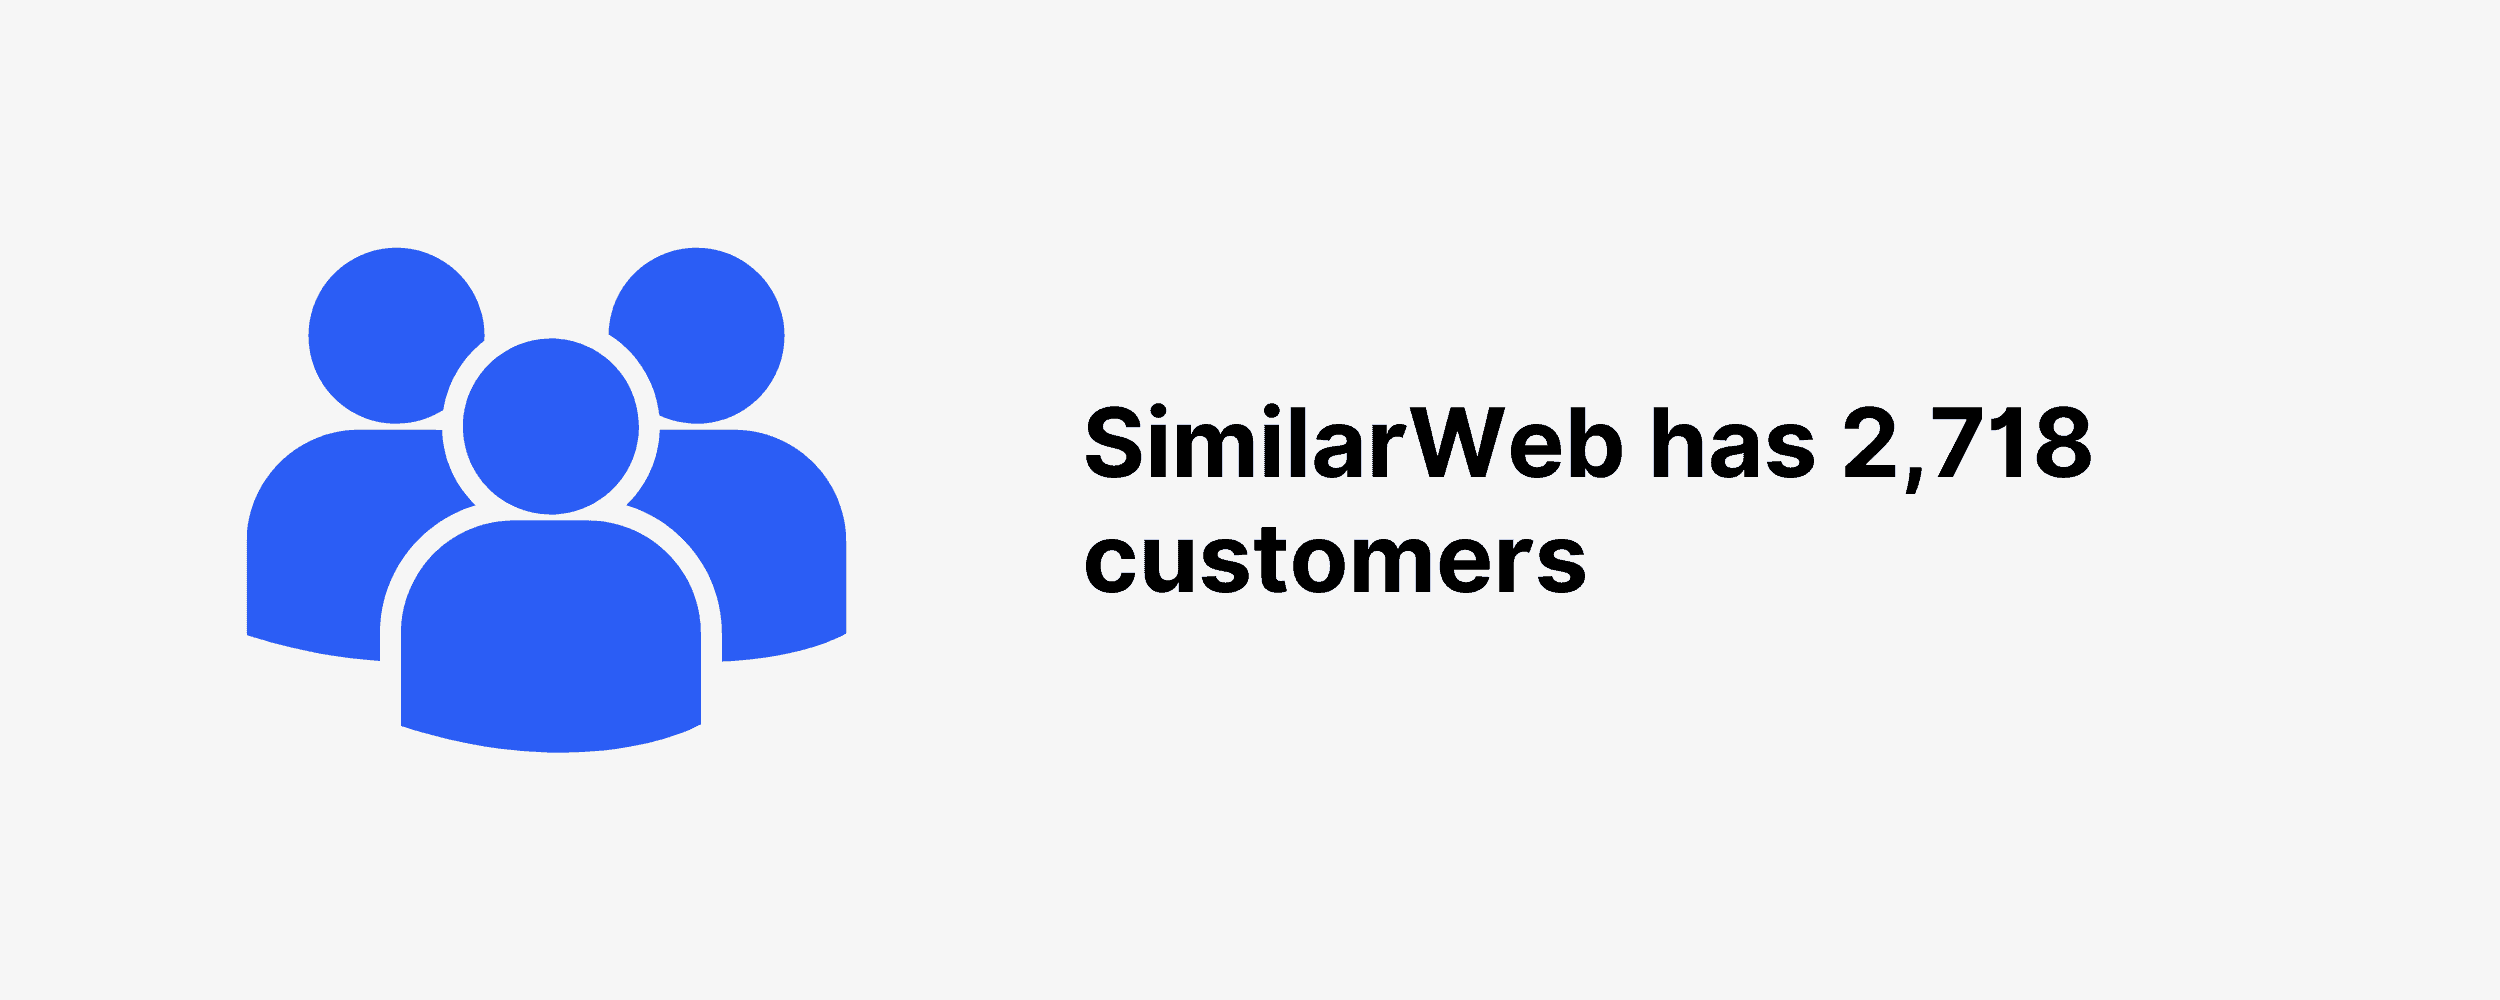 SimilarWeb has 2,718 customers